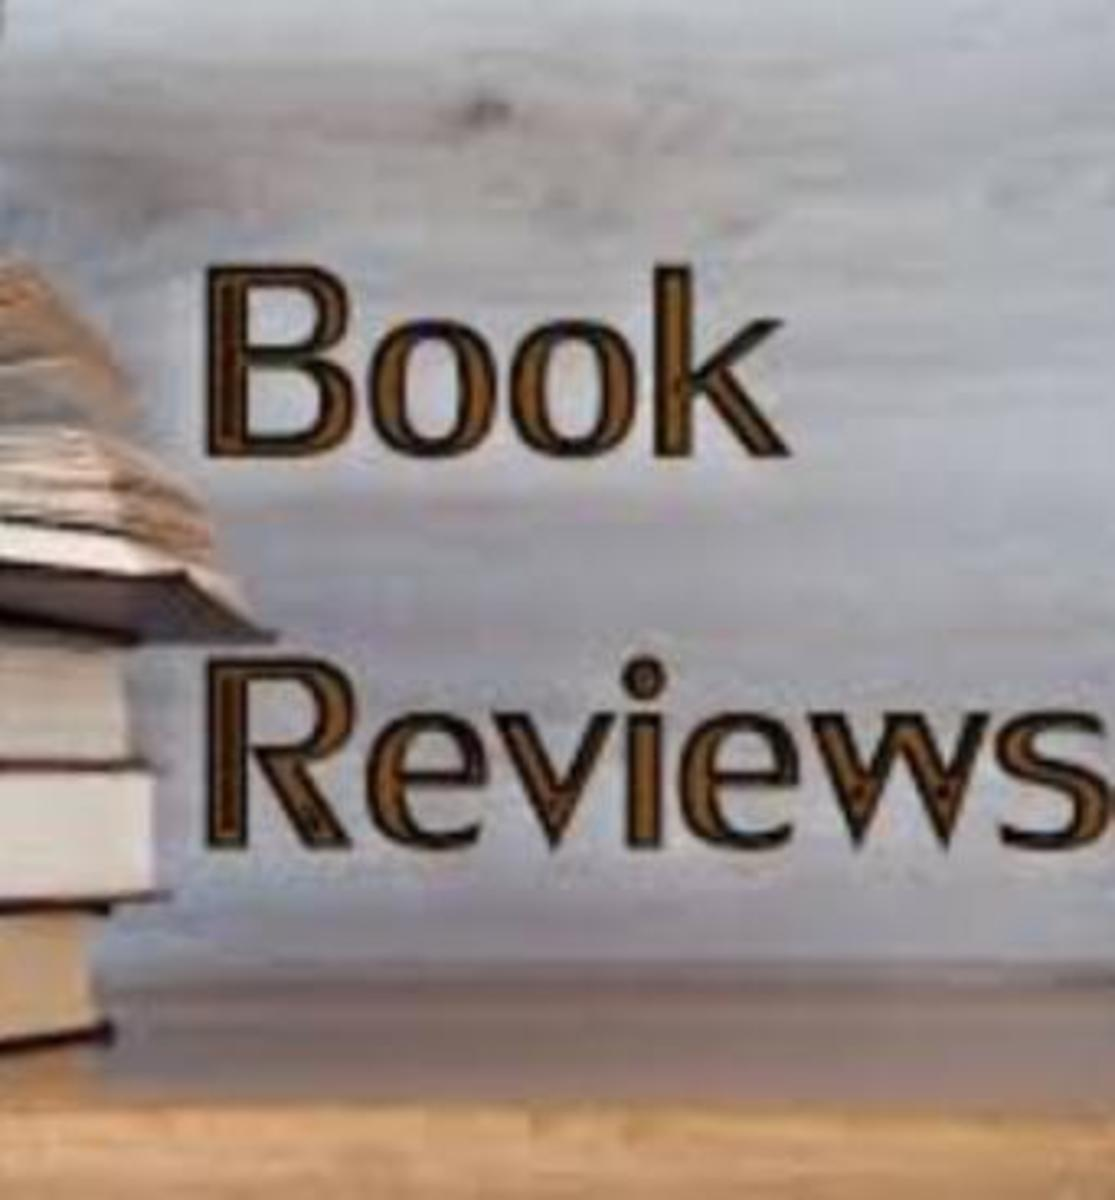 Love Book Reviews?